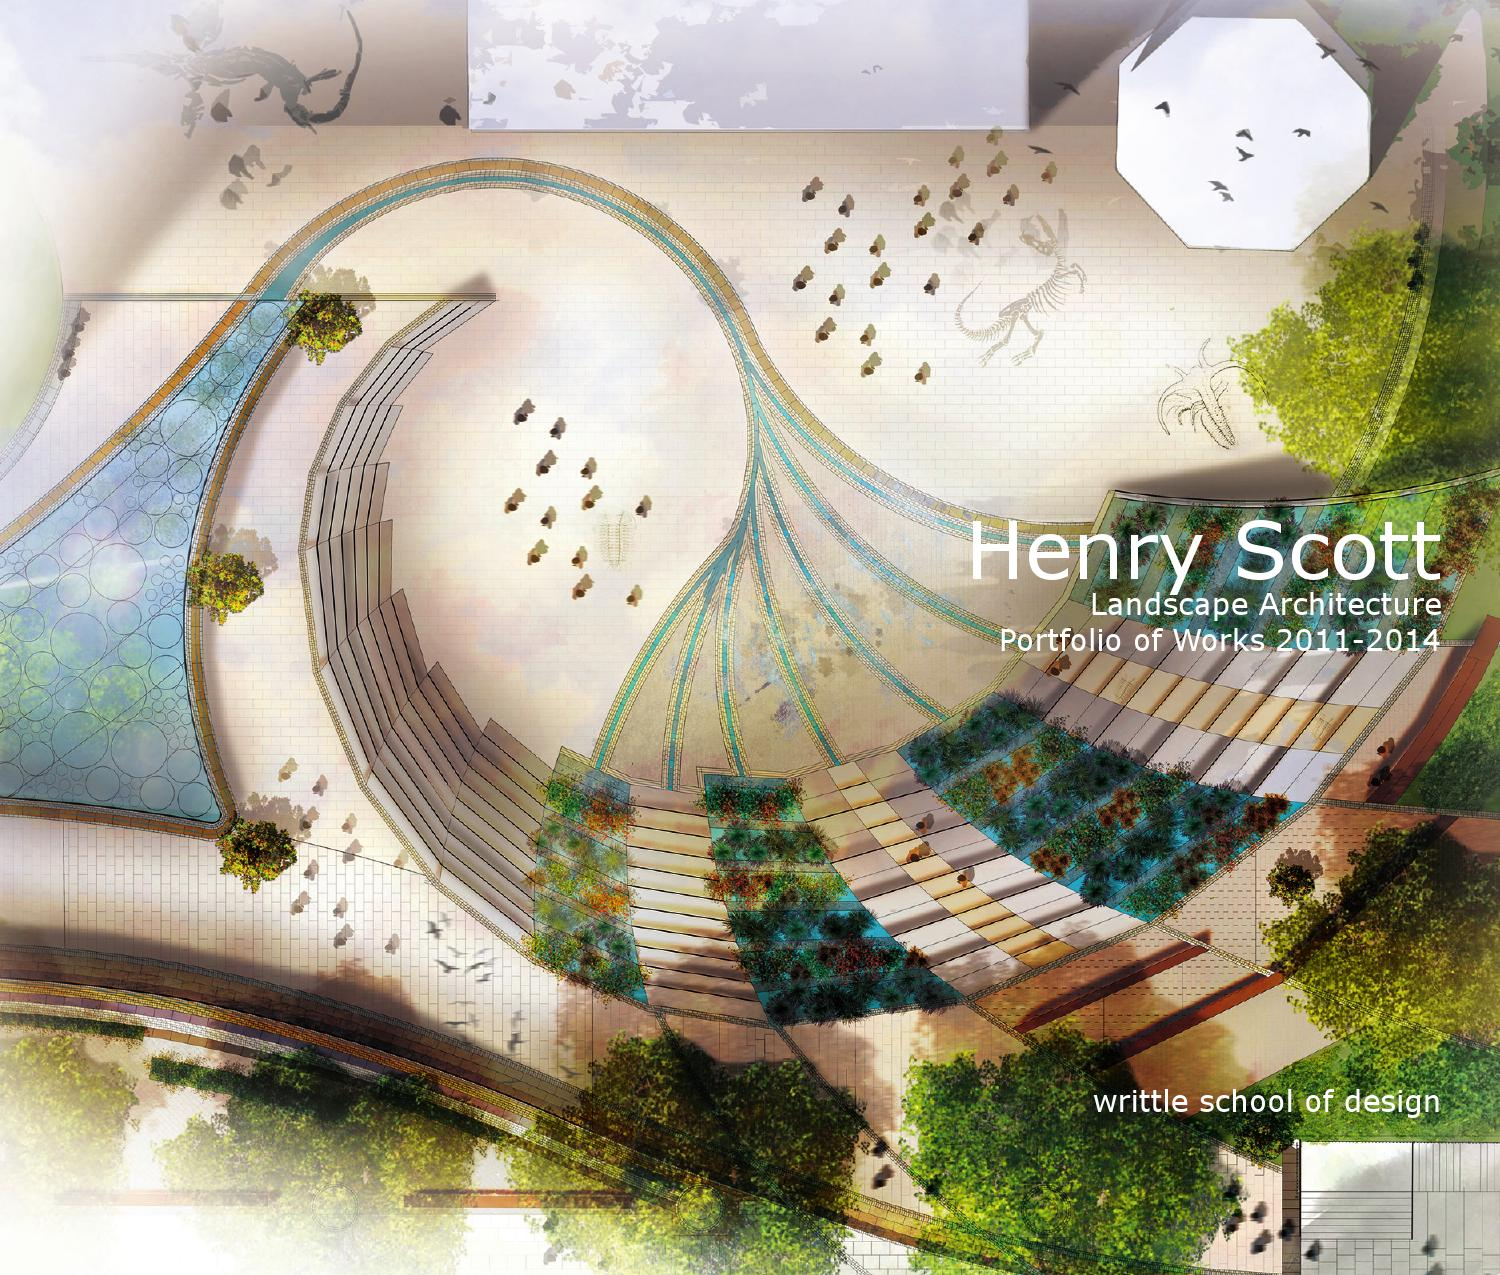 Landscape architecture portfolio of works by henry scott for Garden design portfolio